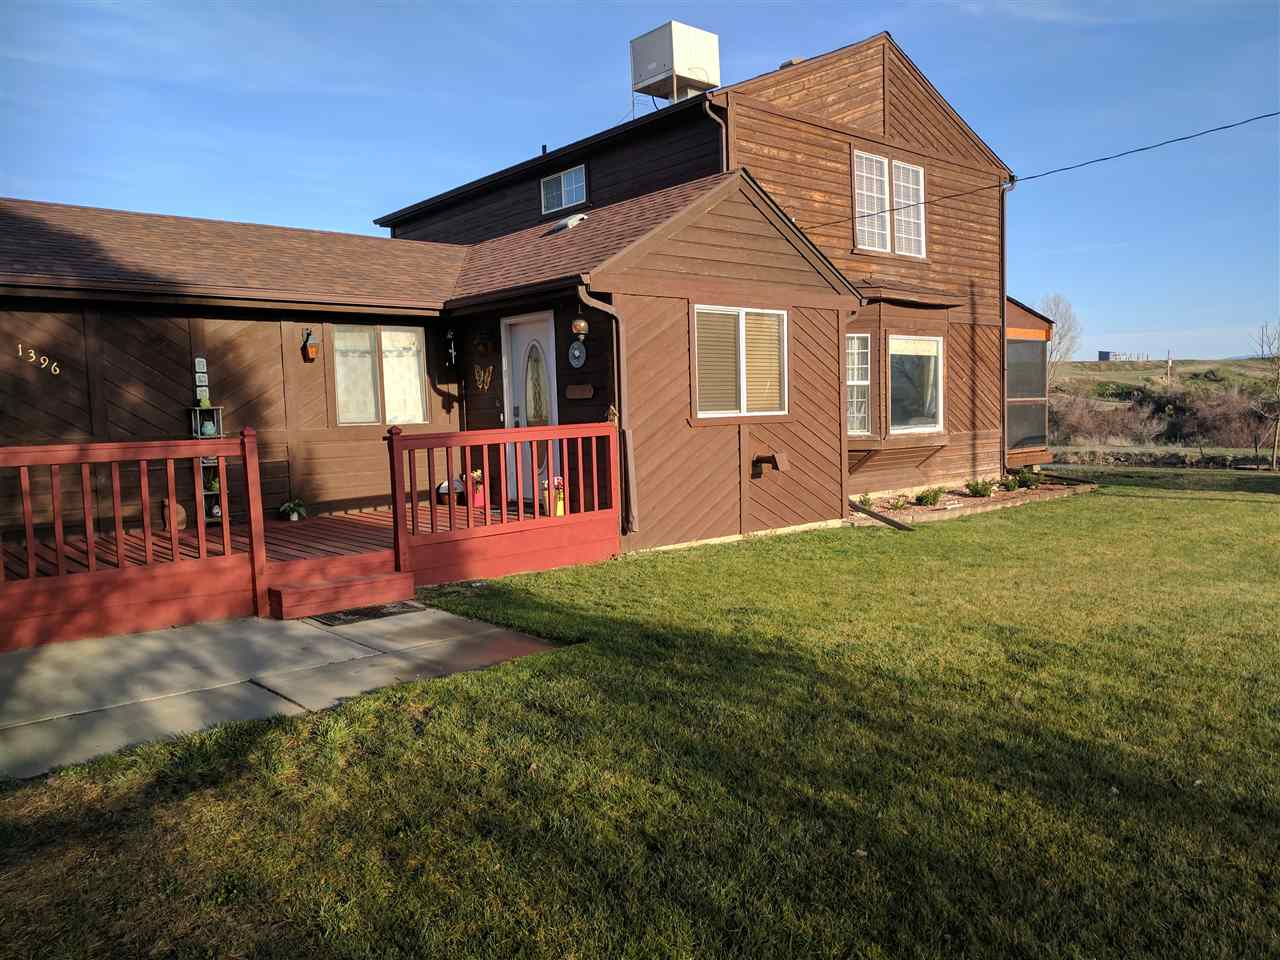 1396 17 1/2 Road, Fruita, CO 81521